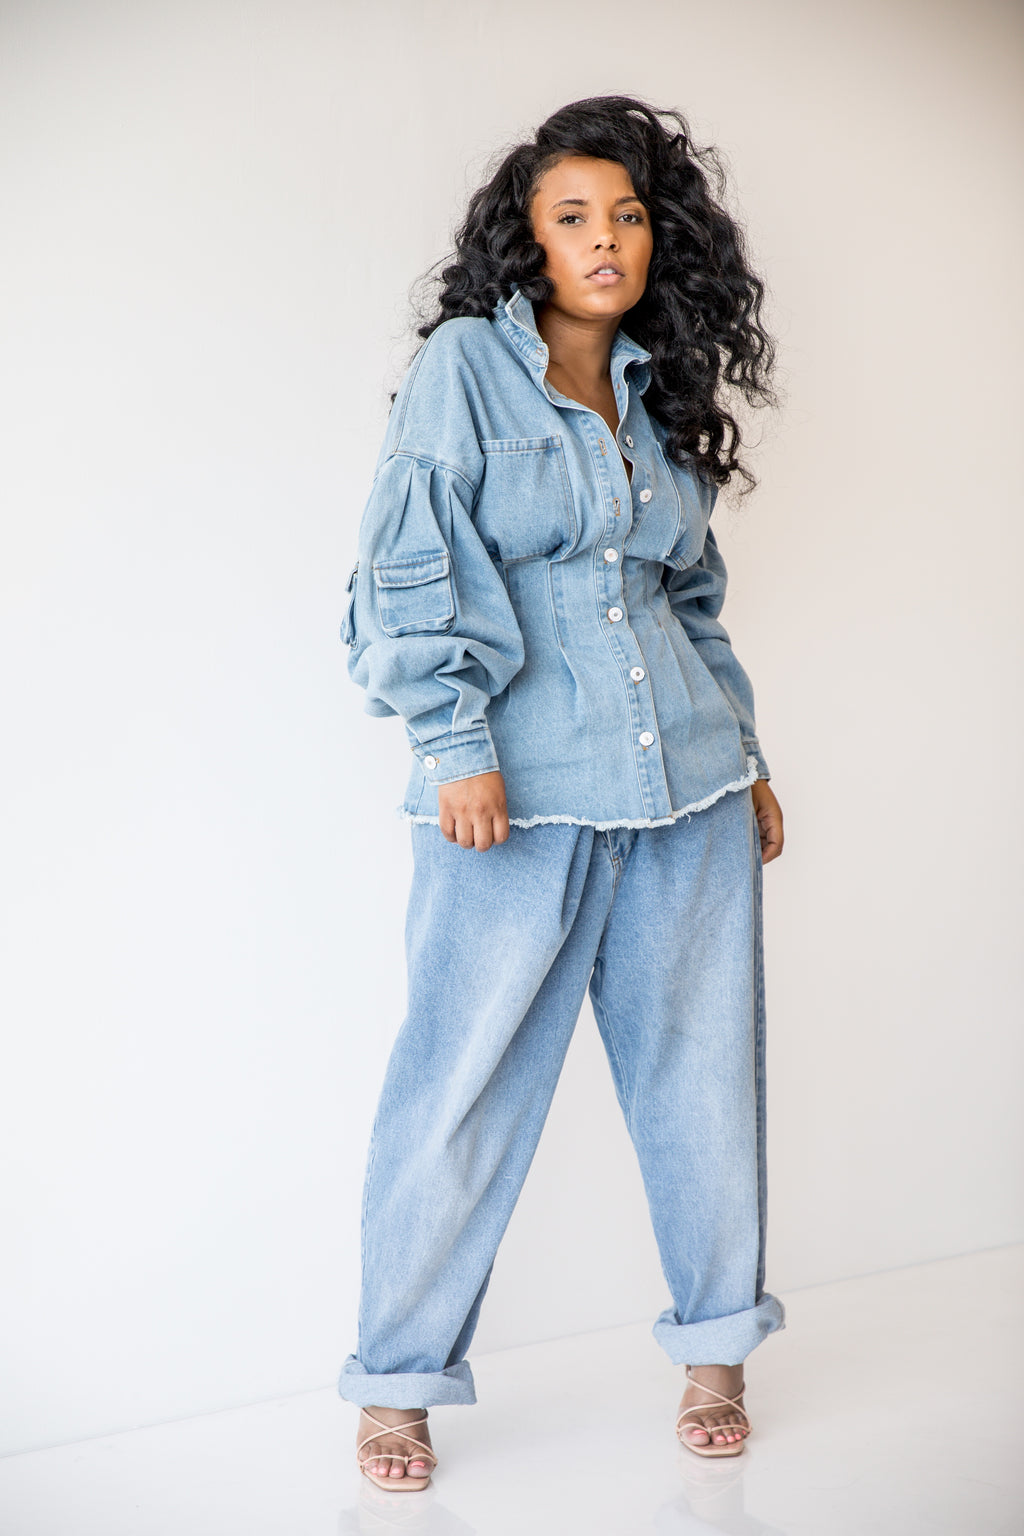 Heavy Cargo | Denim Corset TOP